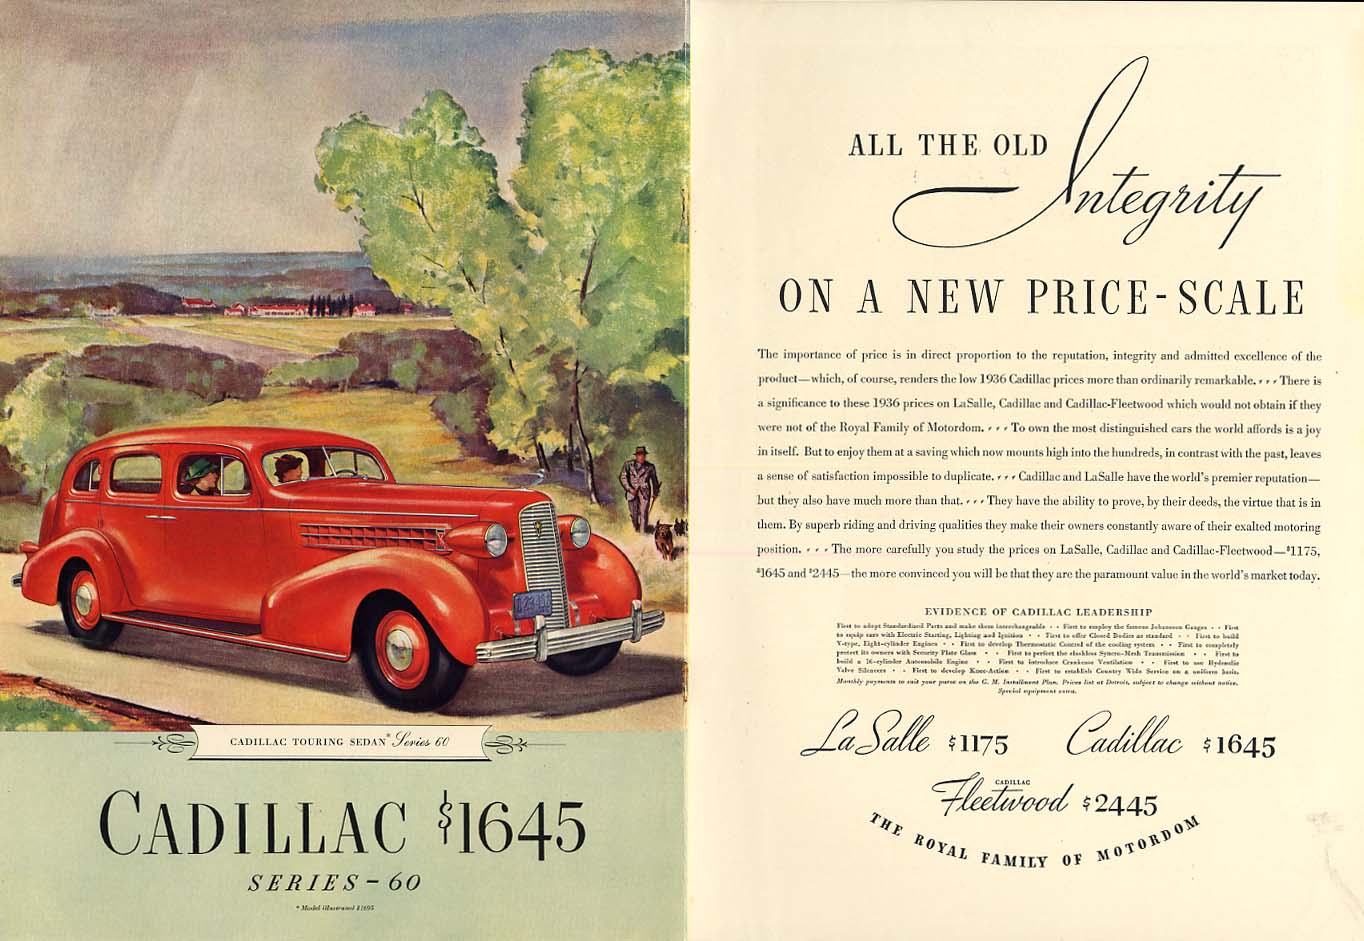 All the old integrity on a new price-scale Cadillac Series 60 ad 1936 NY